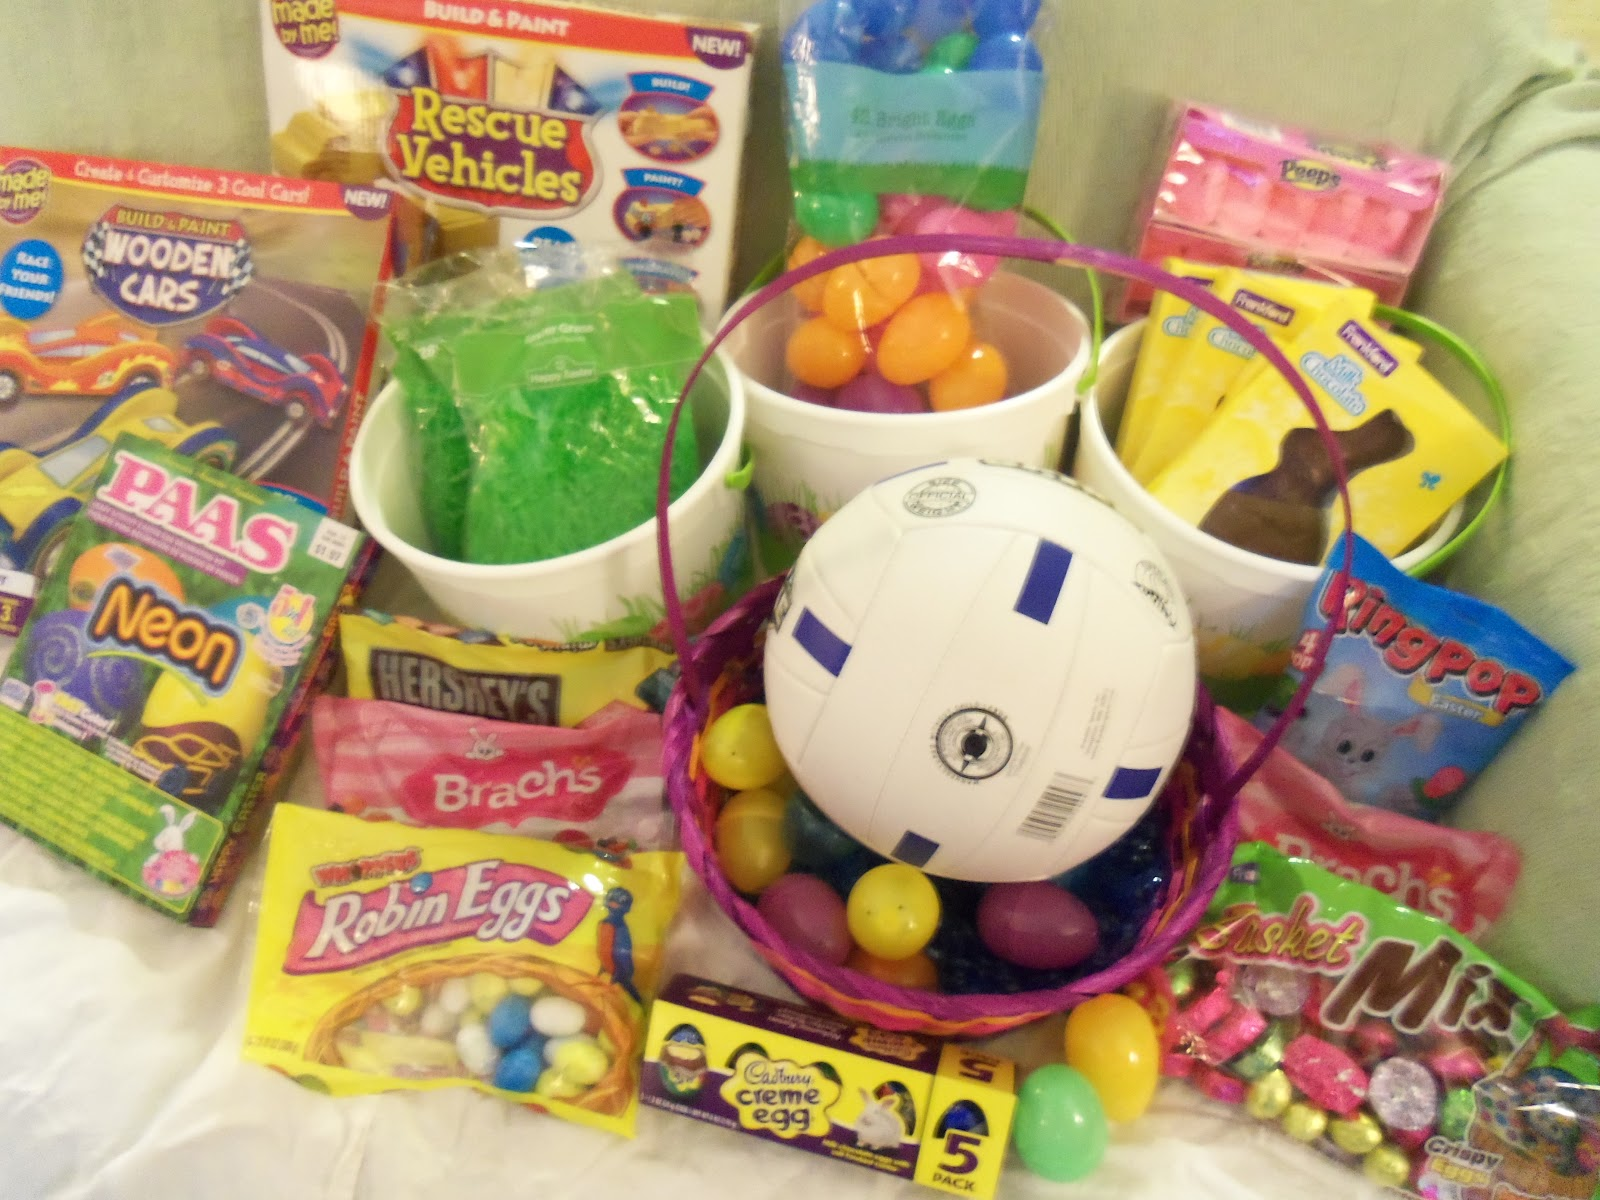 Lille punkin cheap easter basket ideas for large families all of this just 53 negle Choice Image